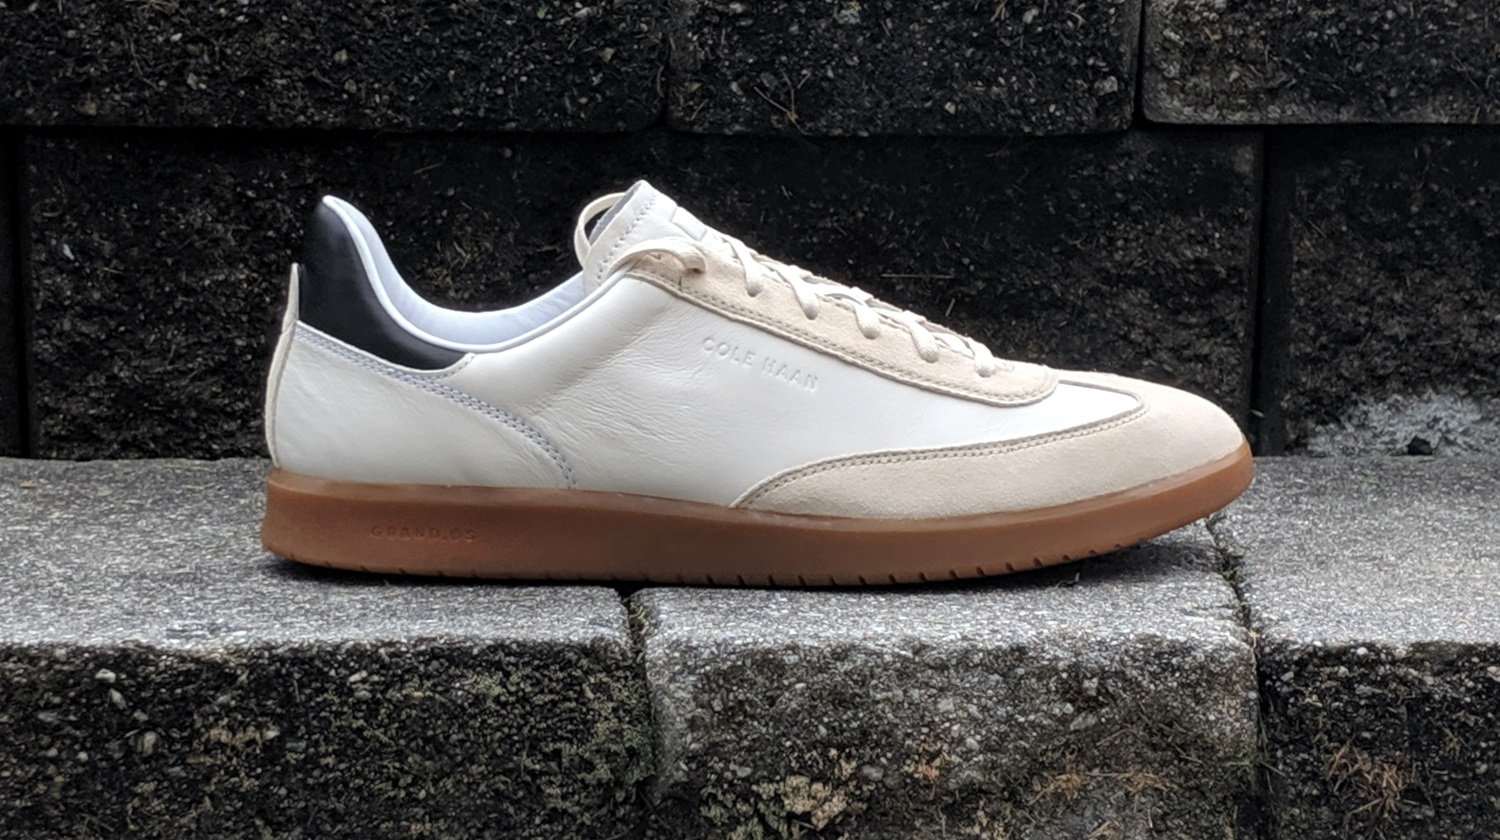 The Cole Haan Grand Pro Turf Sneaker